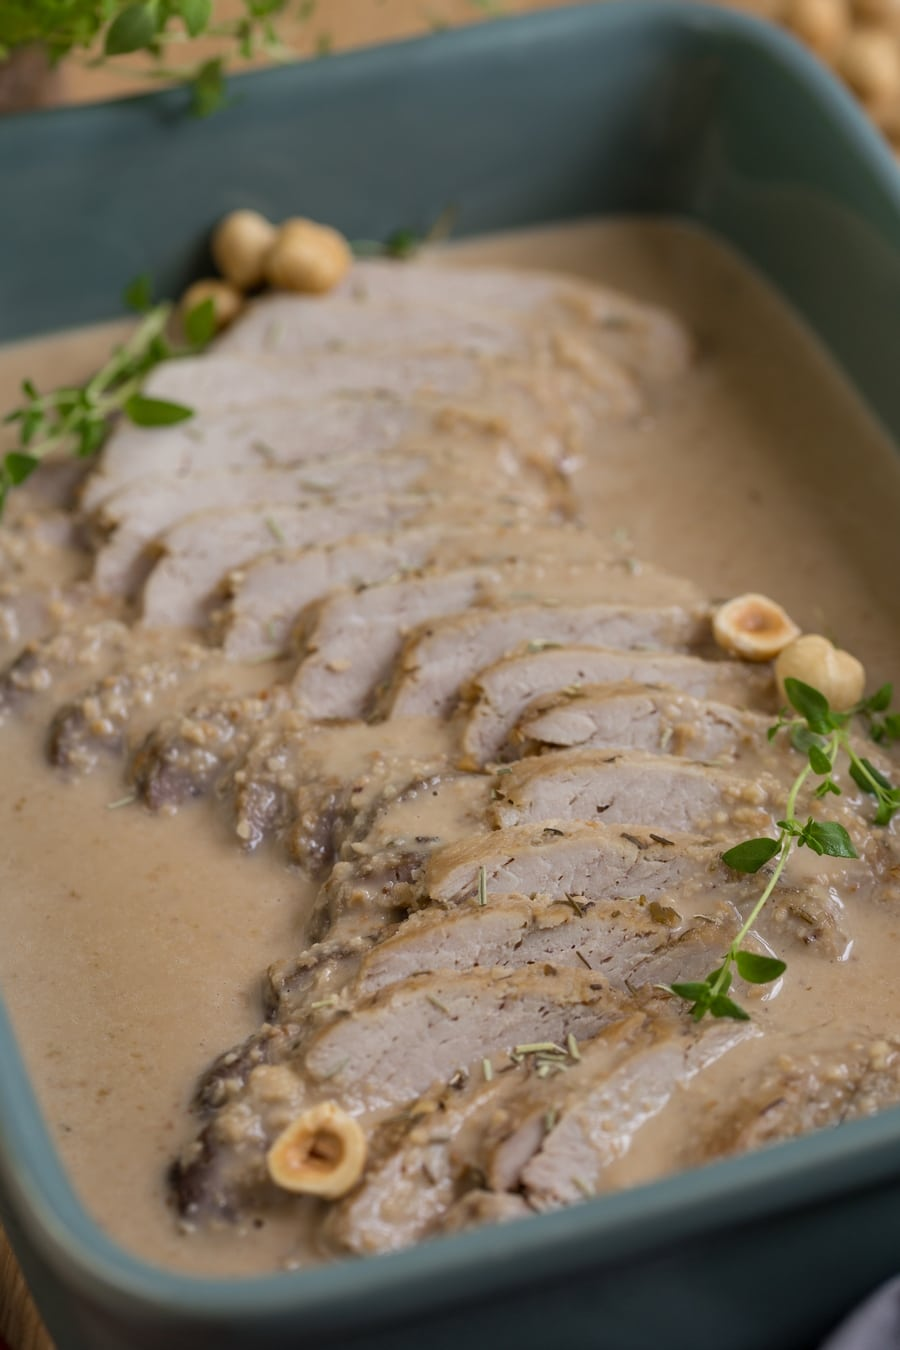 Baked pork loin in hazelnut sauce in green casserole dish.